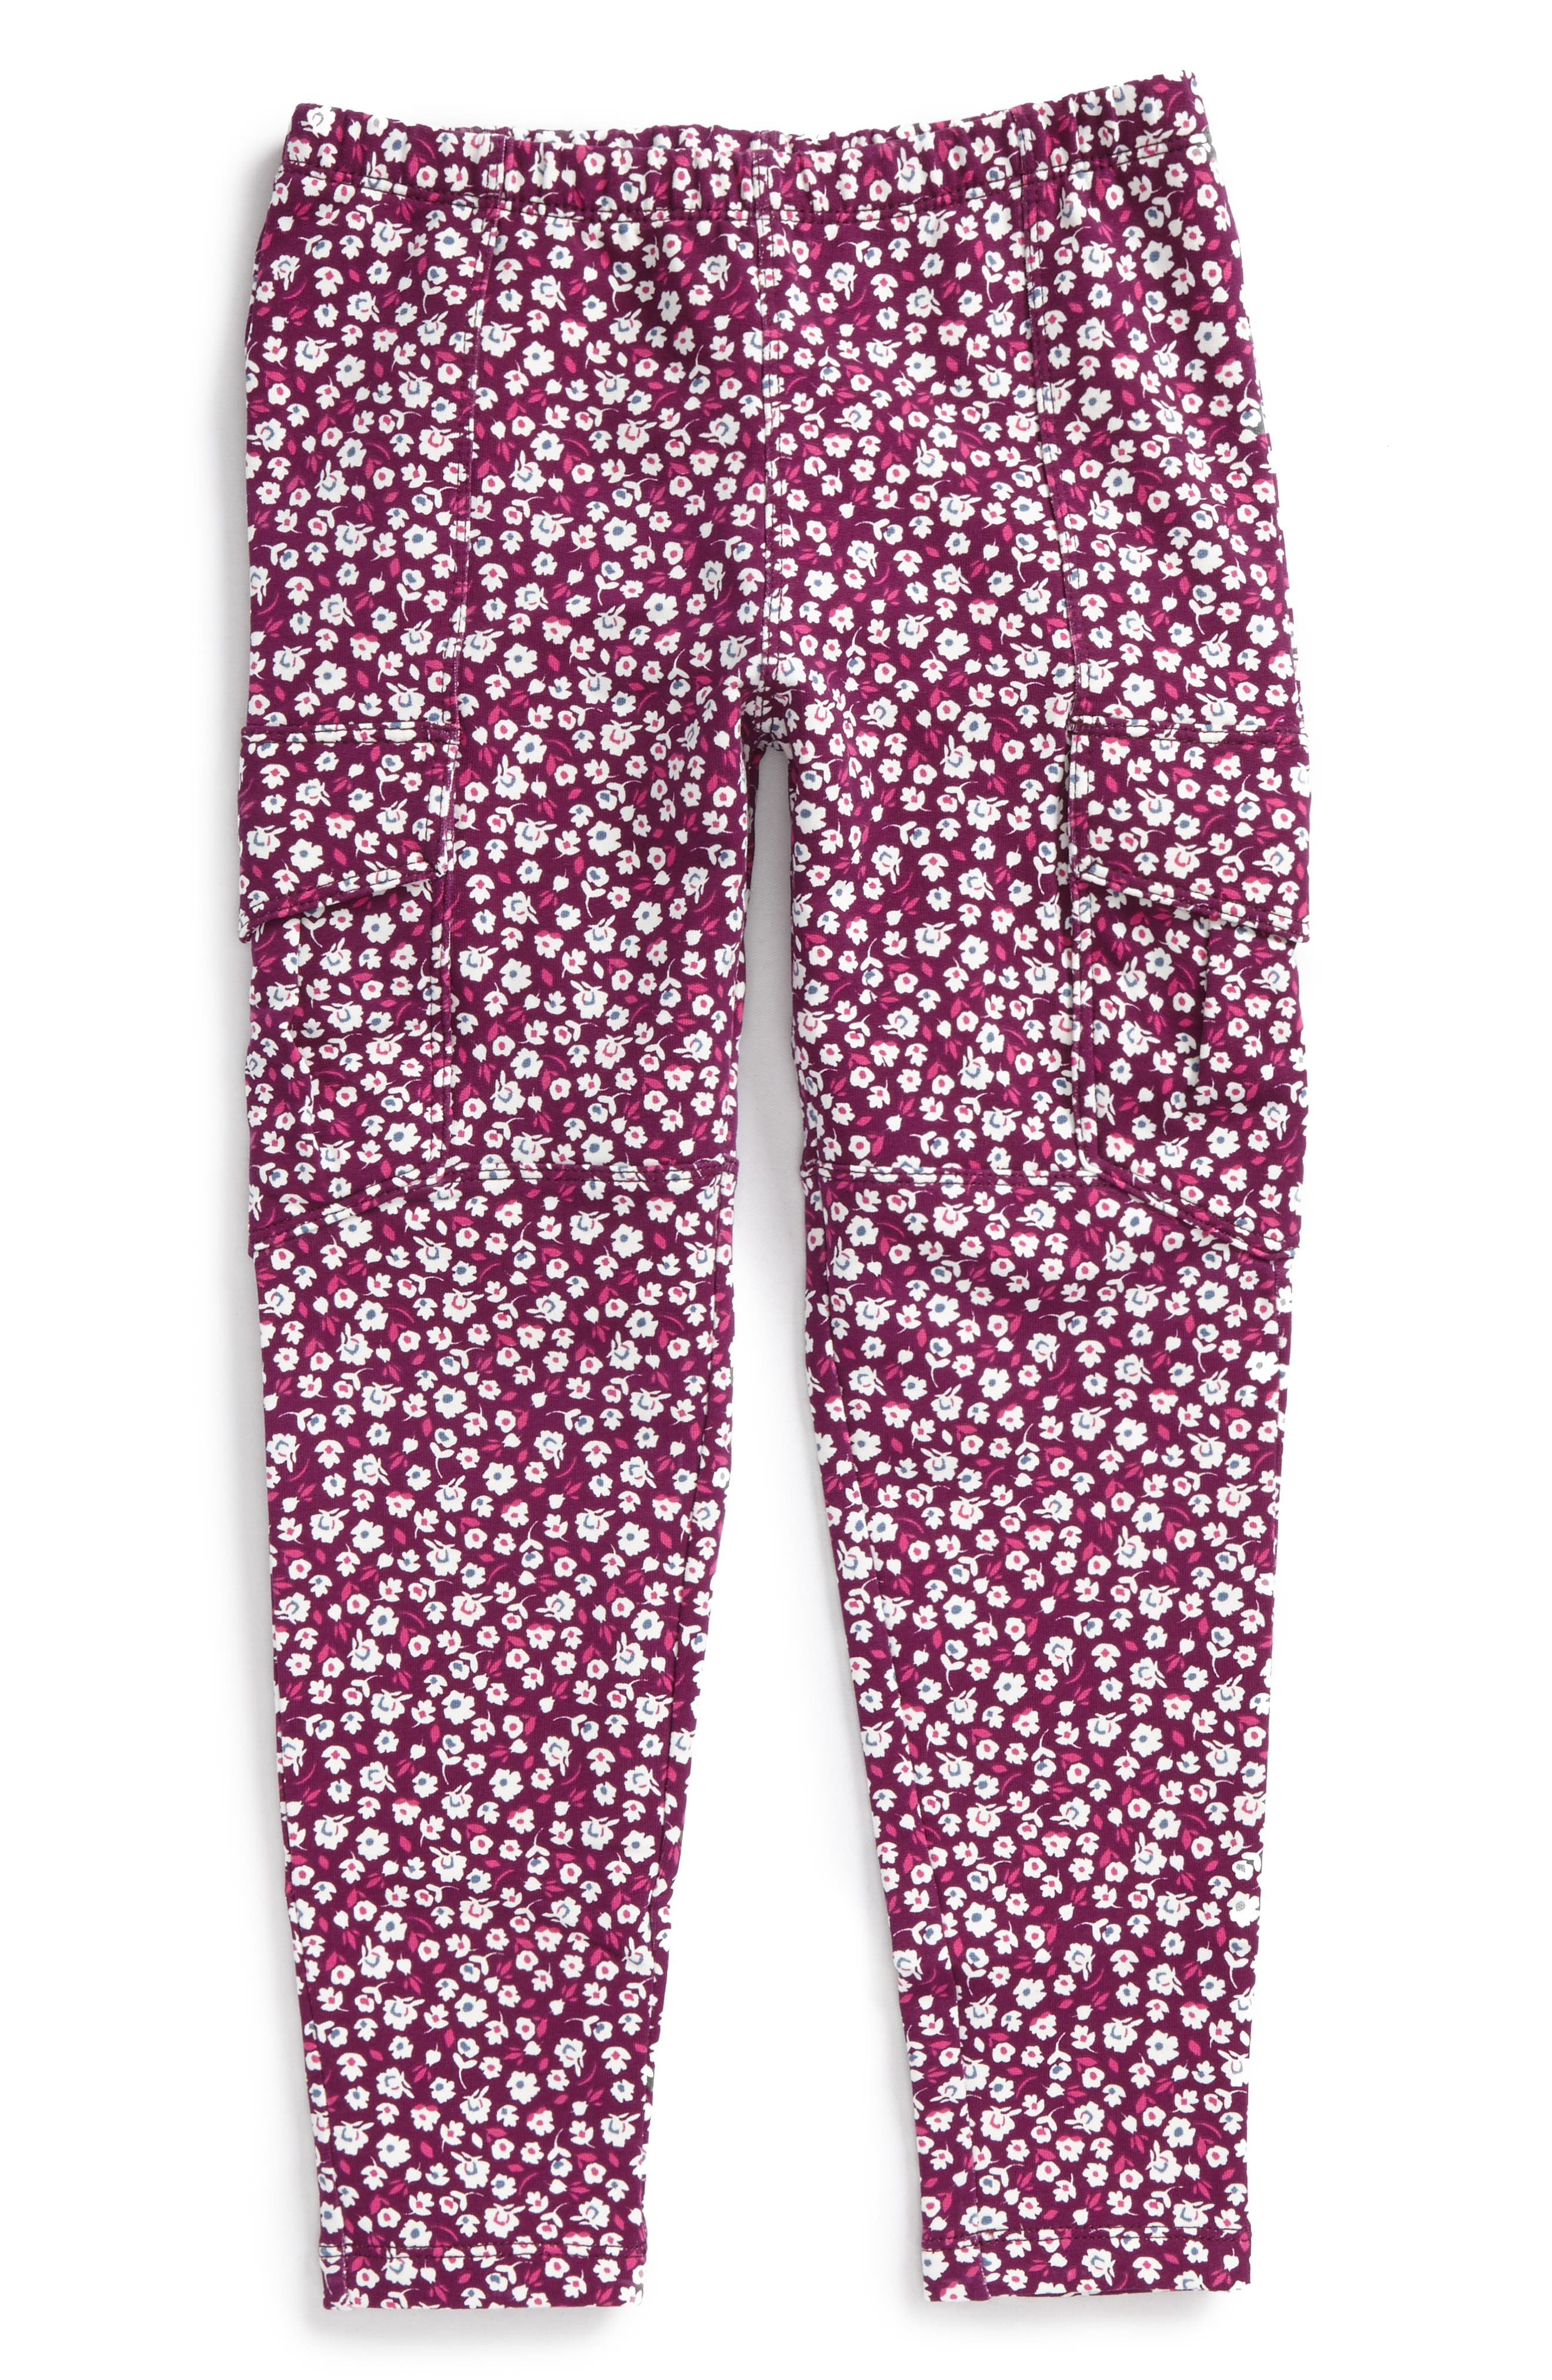 Main Image - Tea Collection Ditsy French Terry Cargo Pants (Toddler Girls, Little Girls & Big Girls)